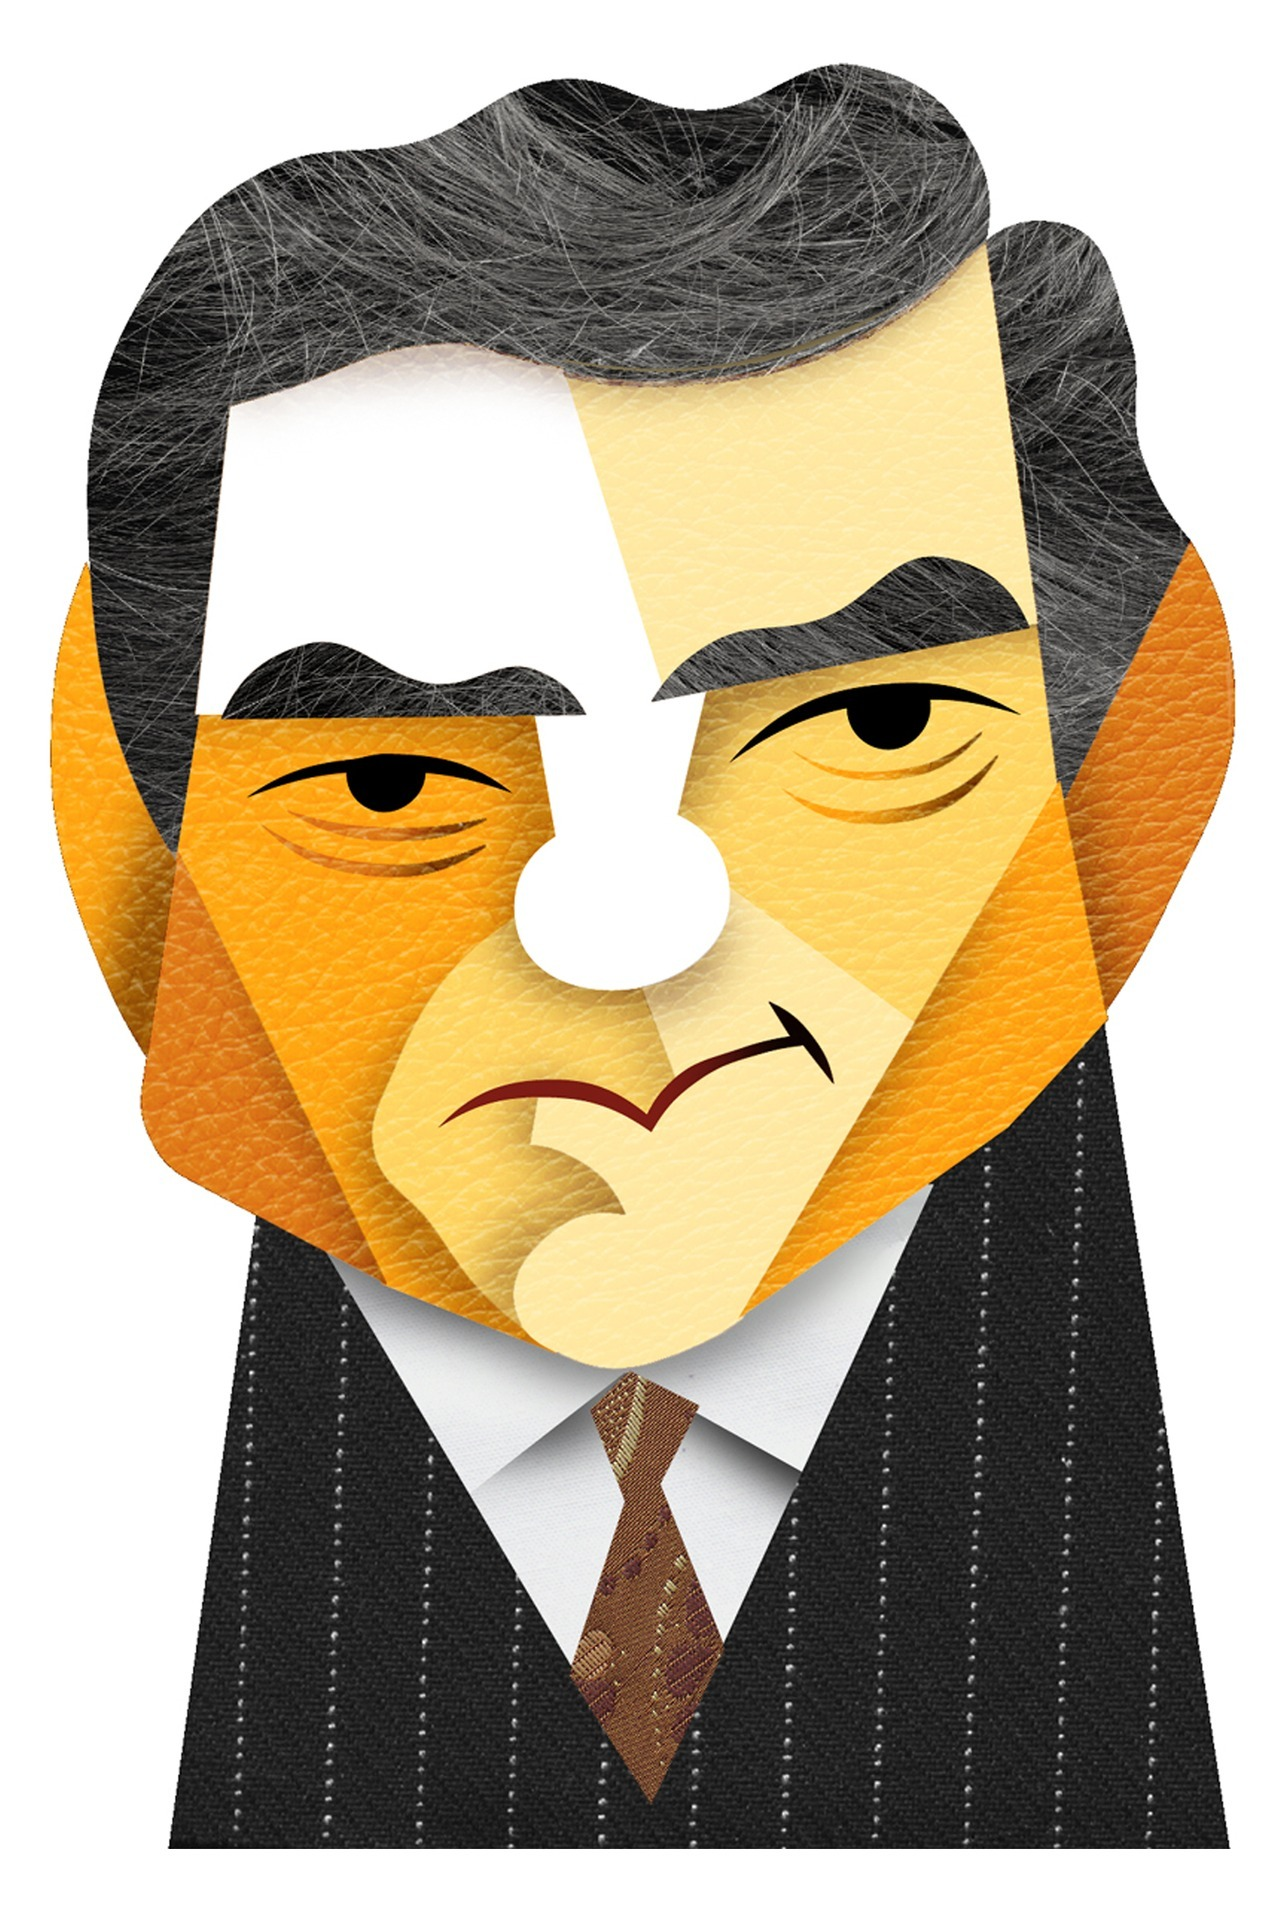 davidcowlesillustrations:  Happy Birthday, Dan Rather